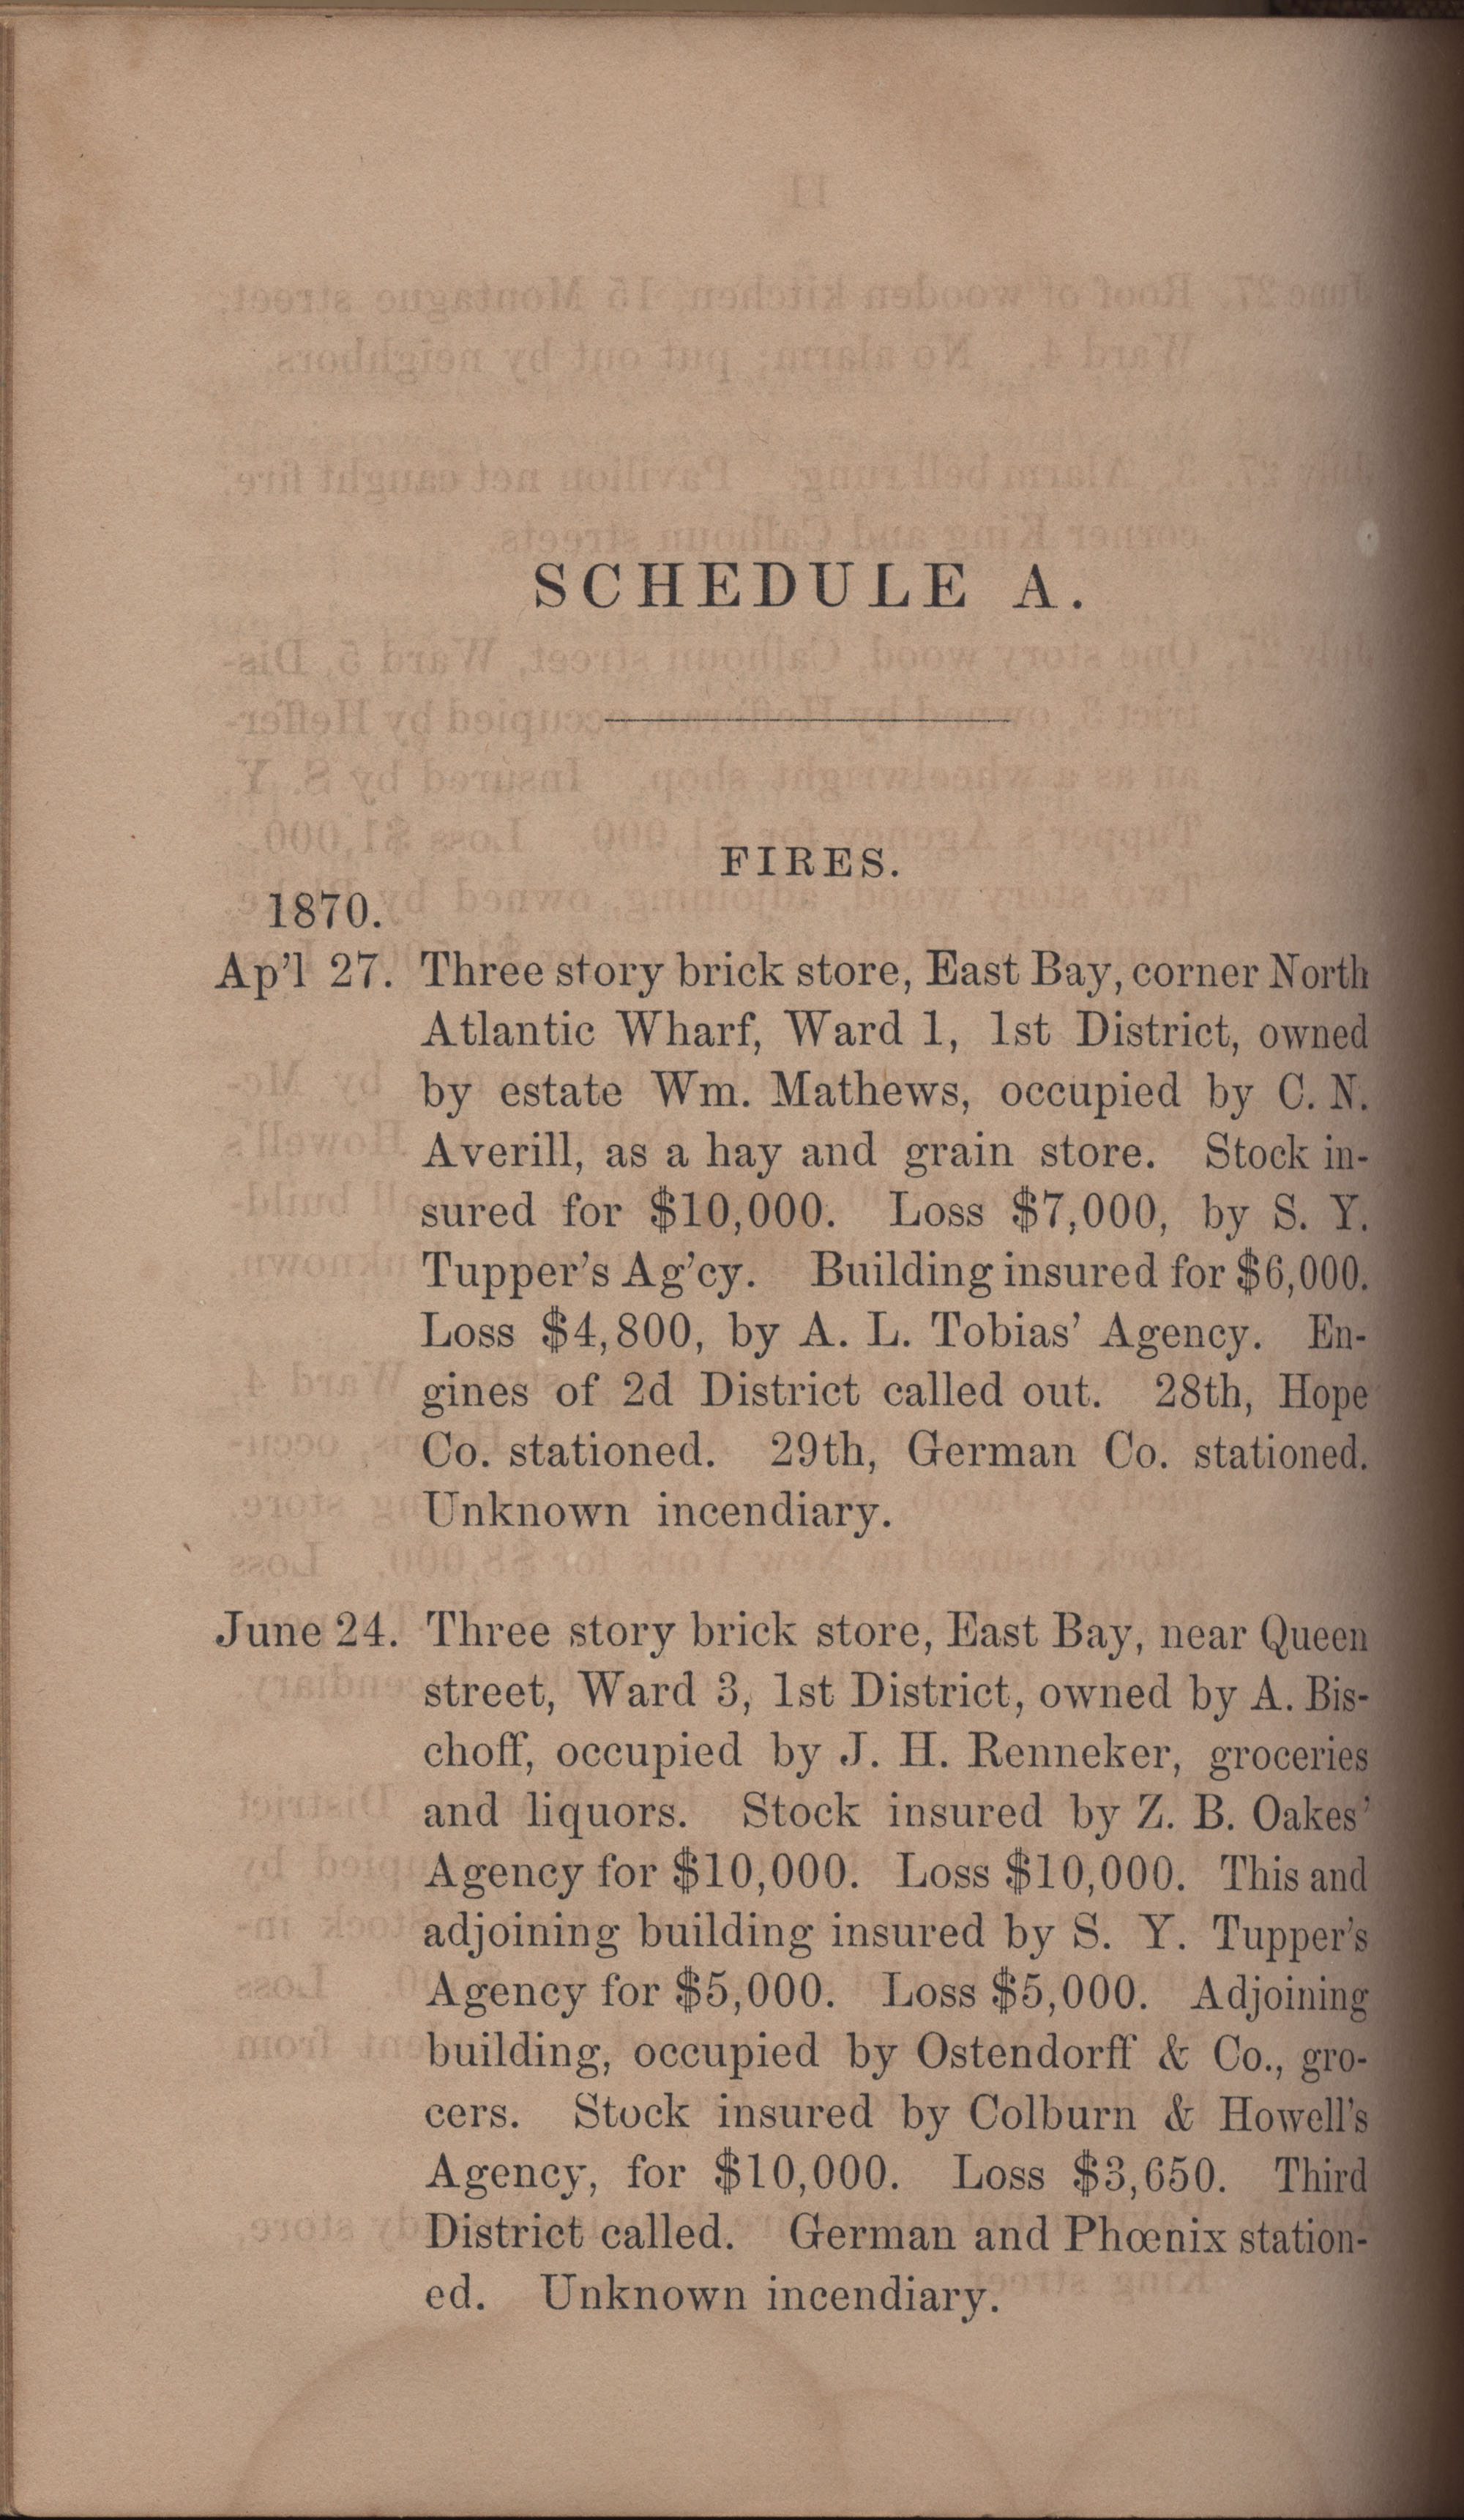 Annual Report of the Chief of the Fire Department of the City of Charleston, page 357